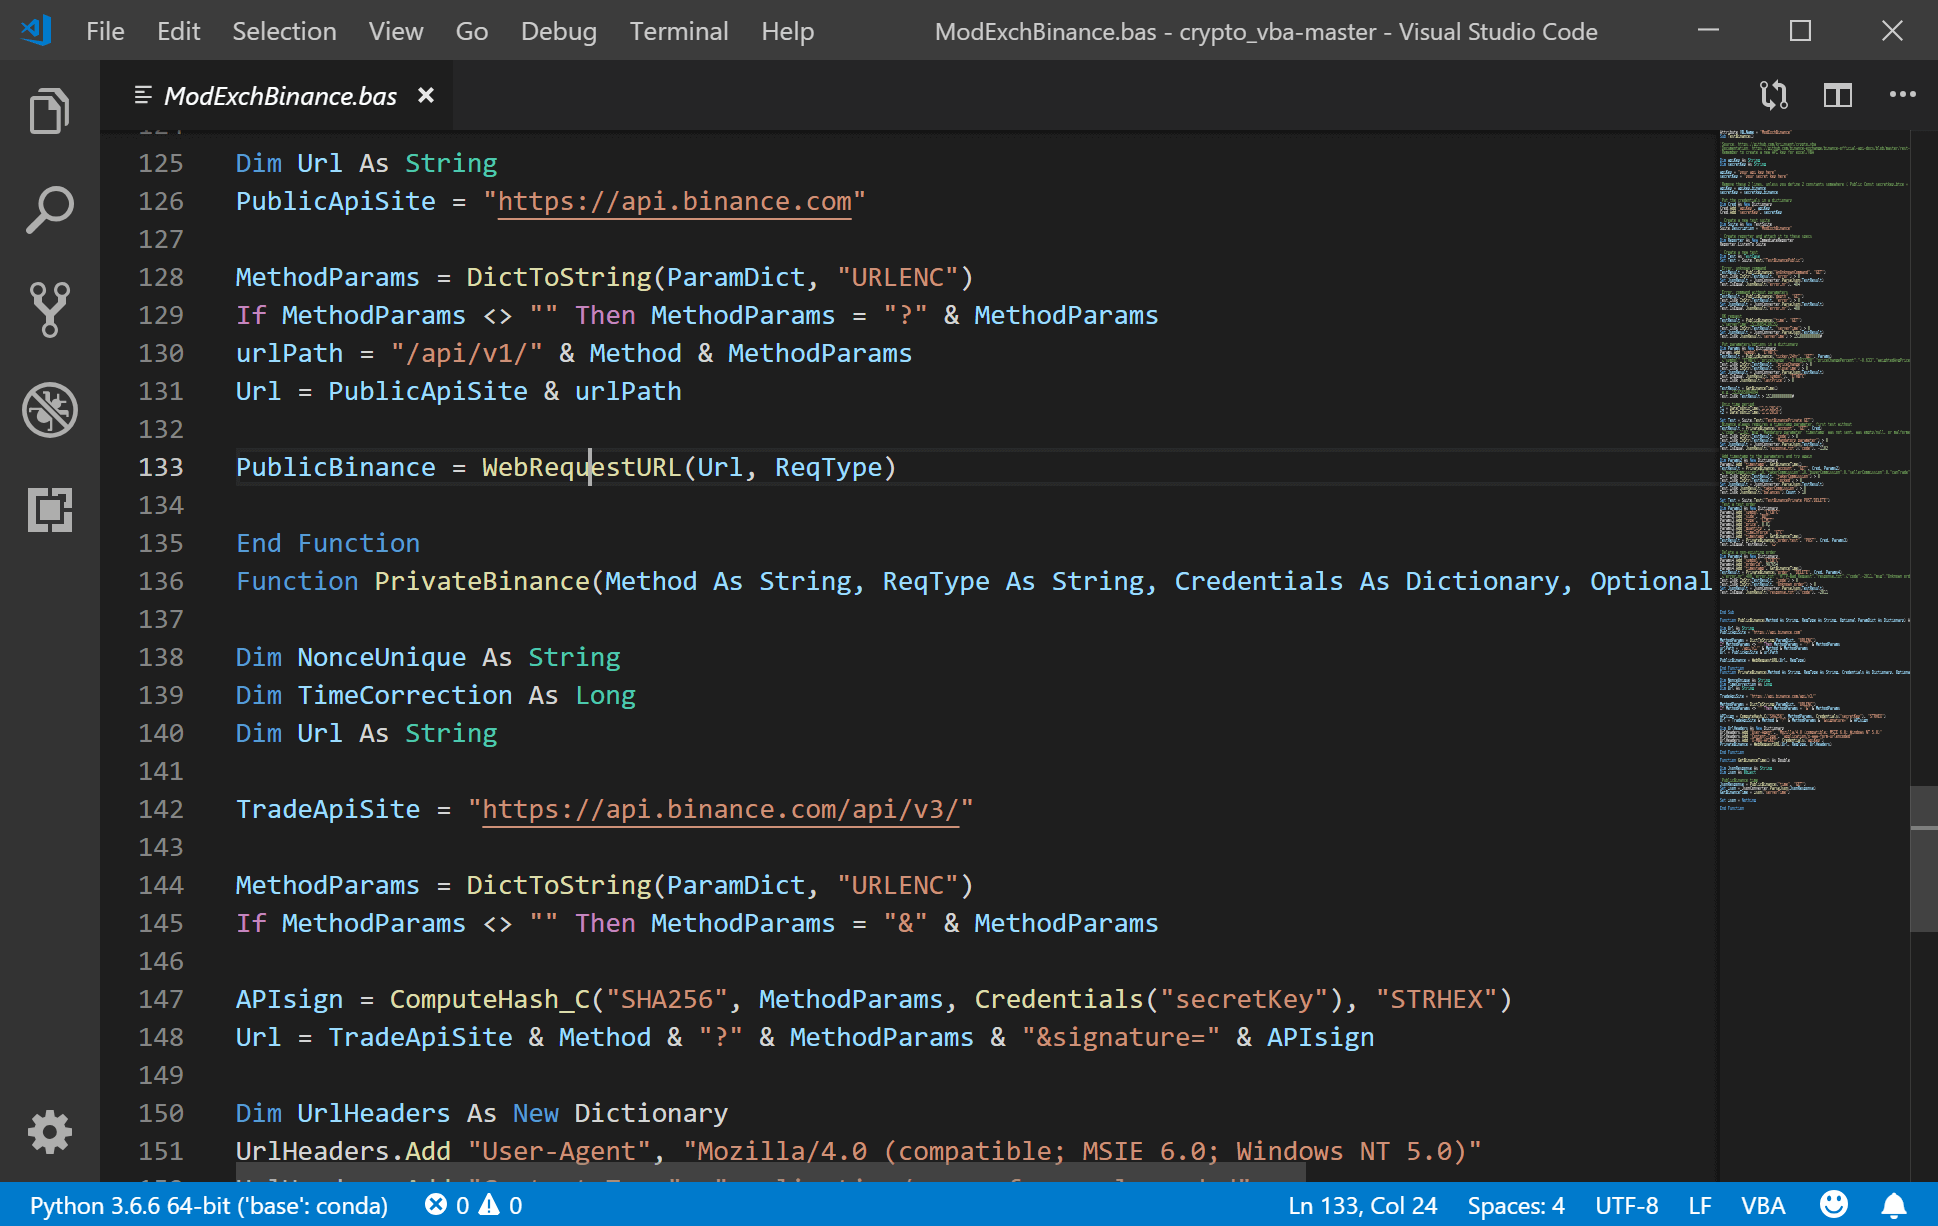 visual studio code vba syntax highlighting